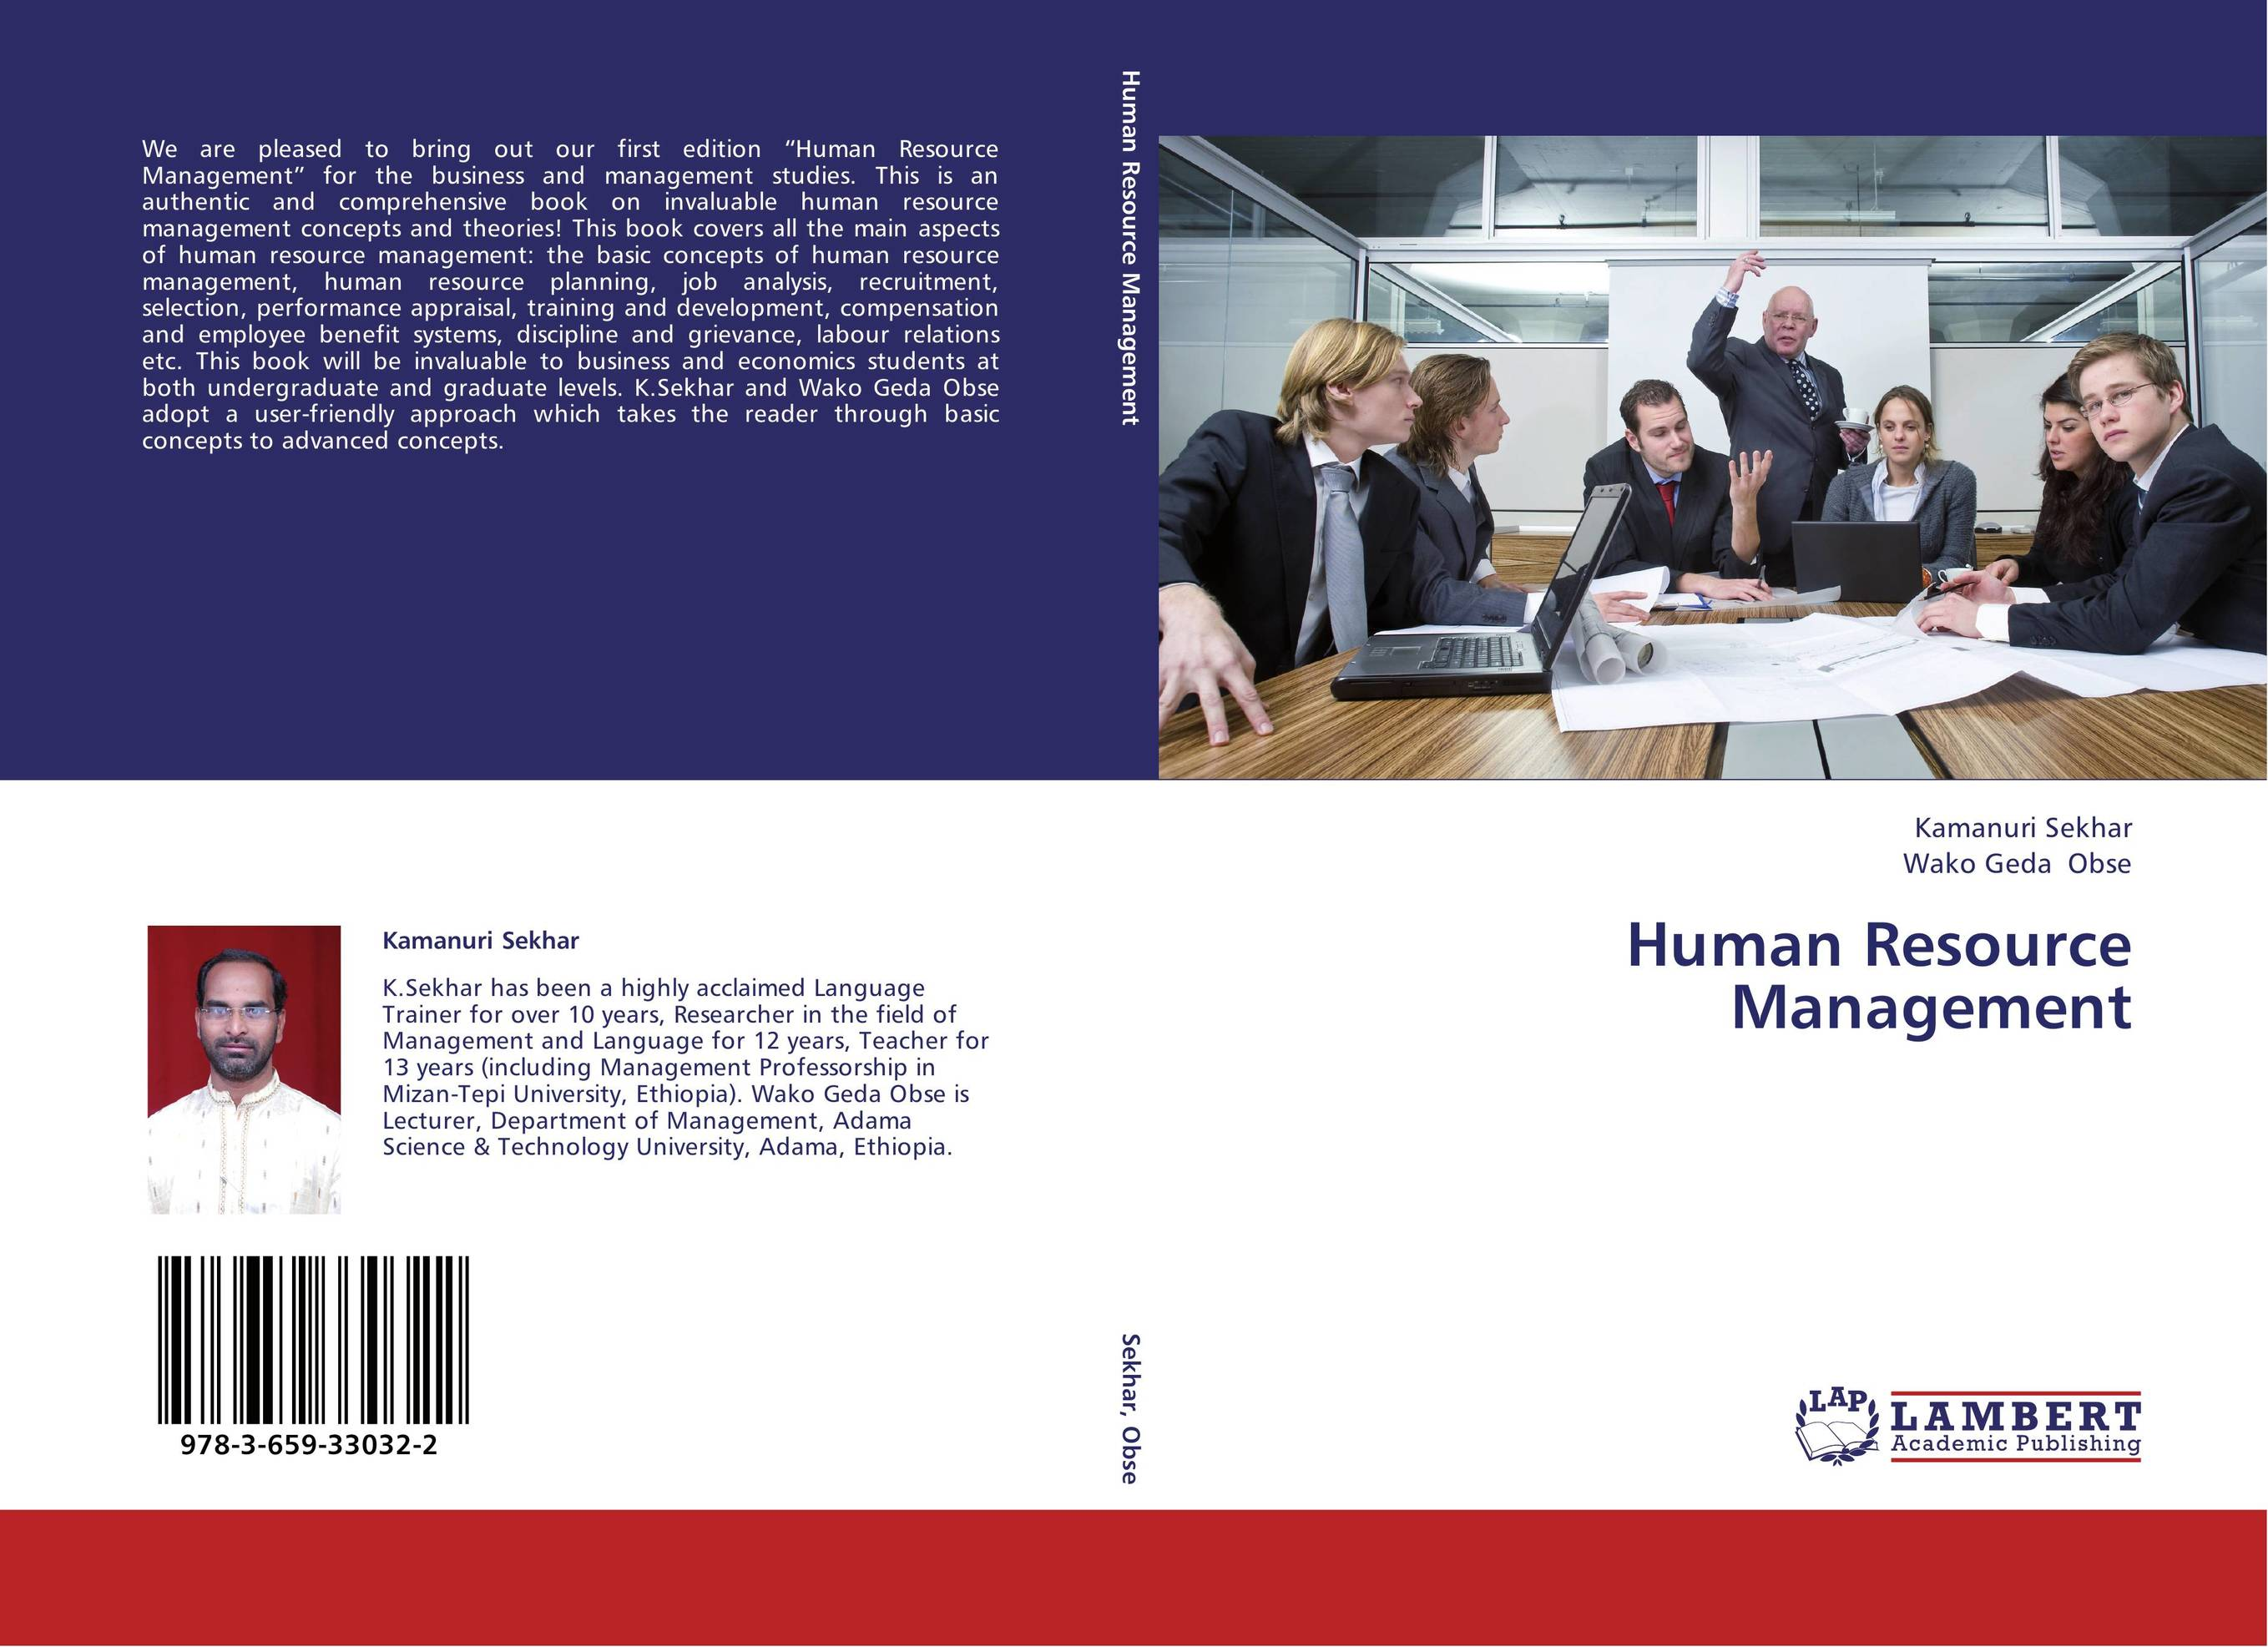 management of industrial relations essay It includes union management relations, joint consultation, negotiating, collective bargaining, grievance handling, disciplinary actions, settlement of industrial disputes etc all the above aspects are concerned with human element in industry as distinct from the mechanical element.